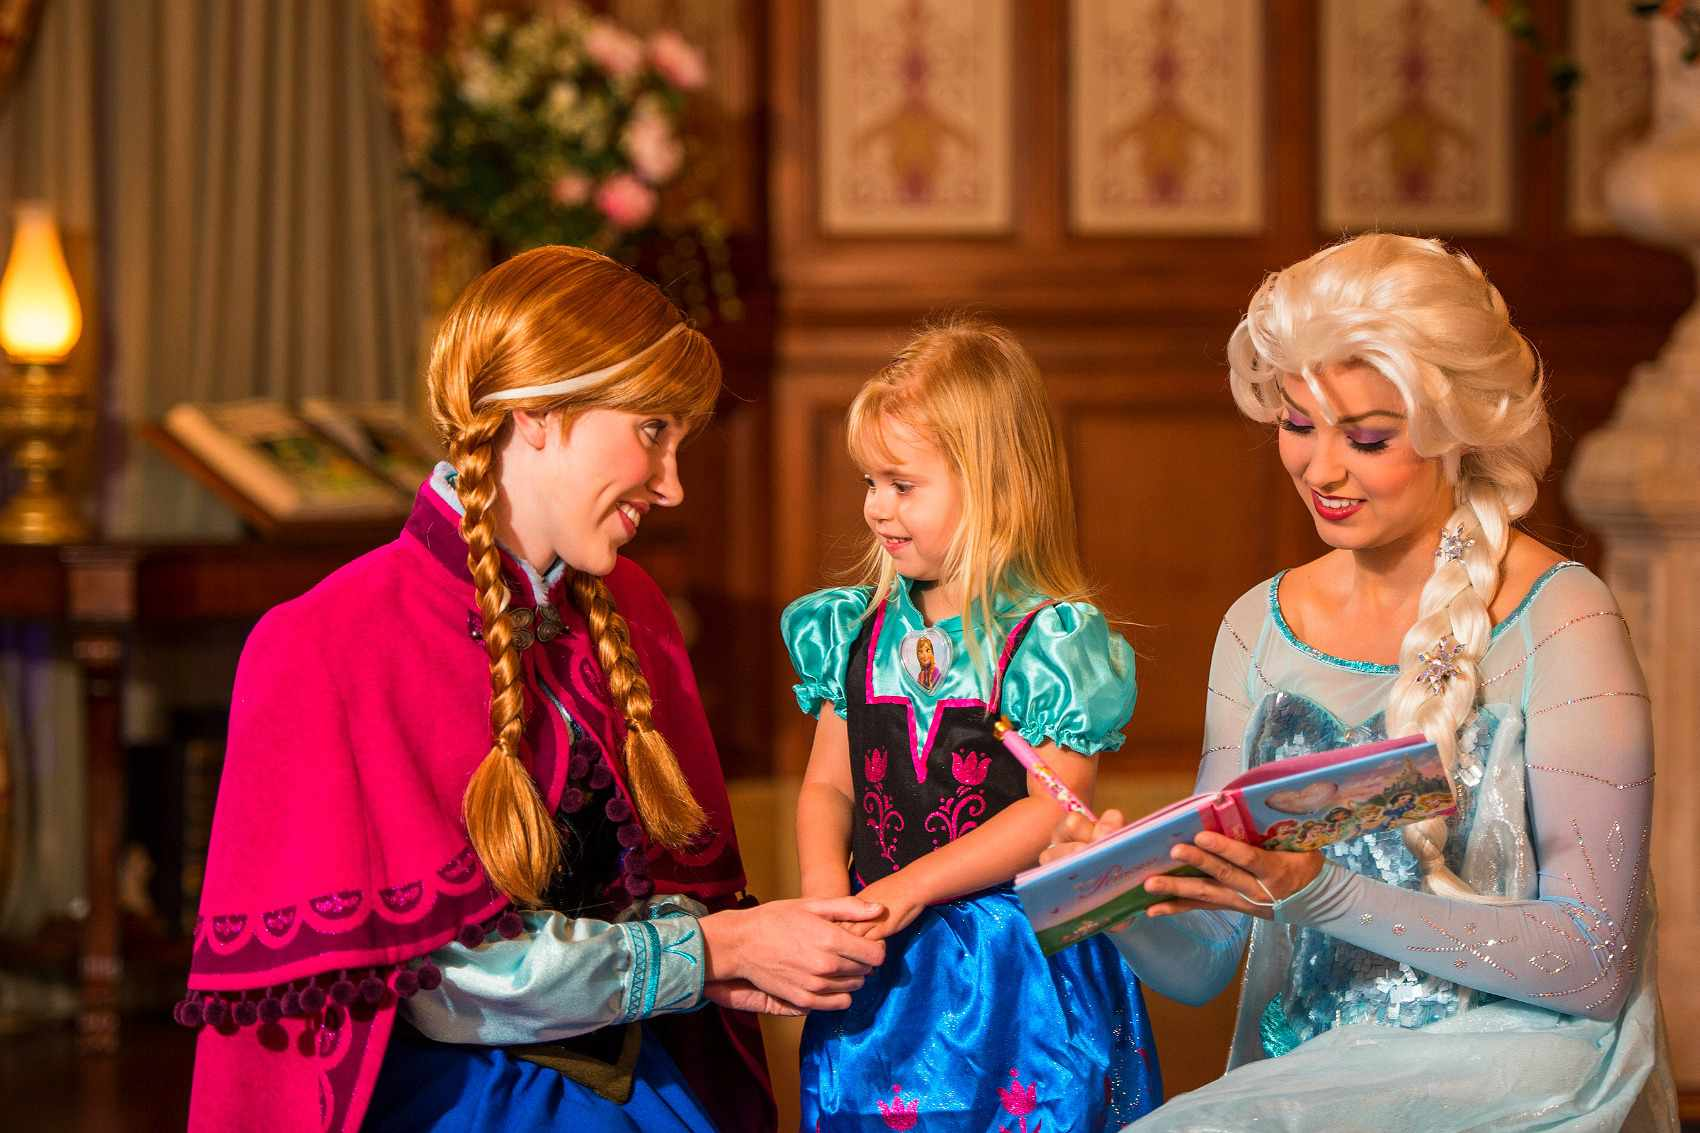 Game plan for meeting elsa and anna at disney world m4hsunfo